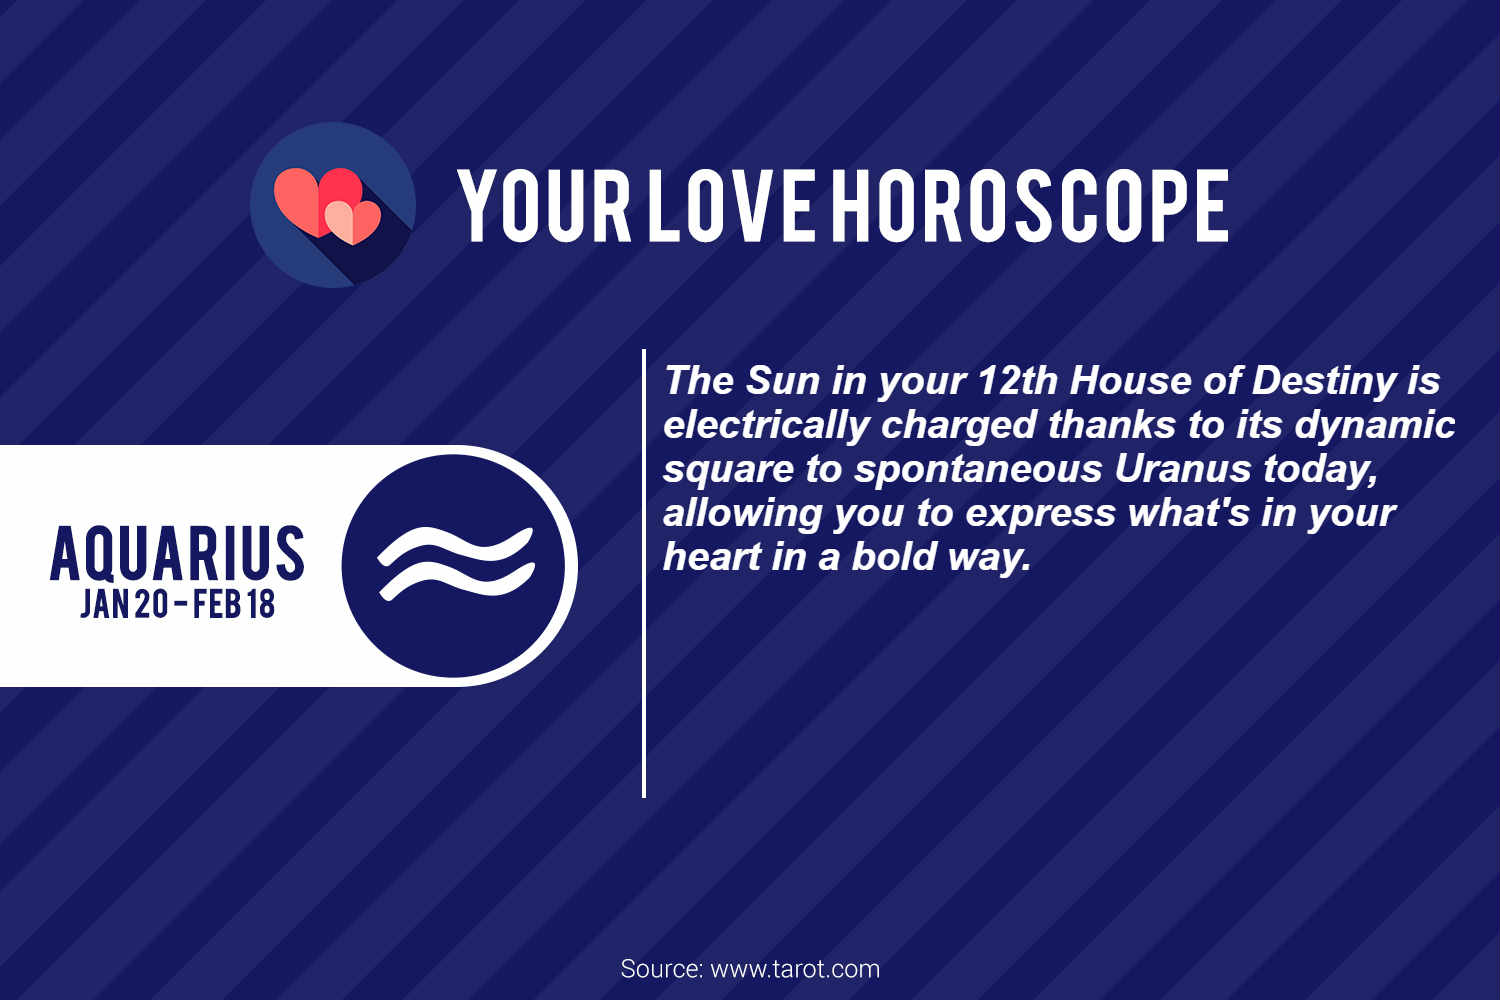 aquarius-love-horoscope-image-for-inuth